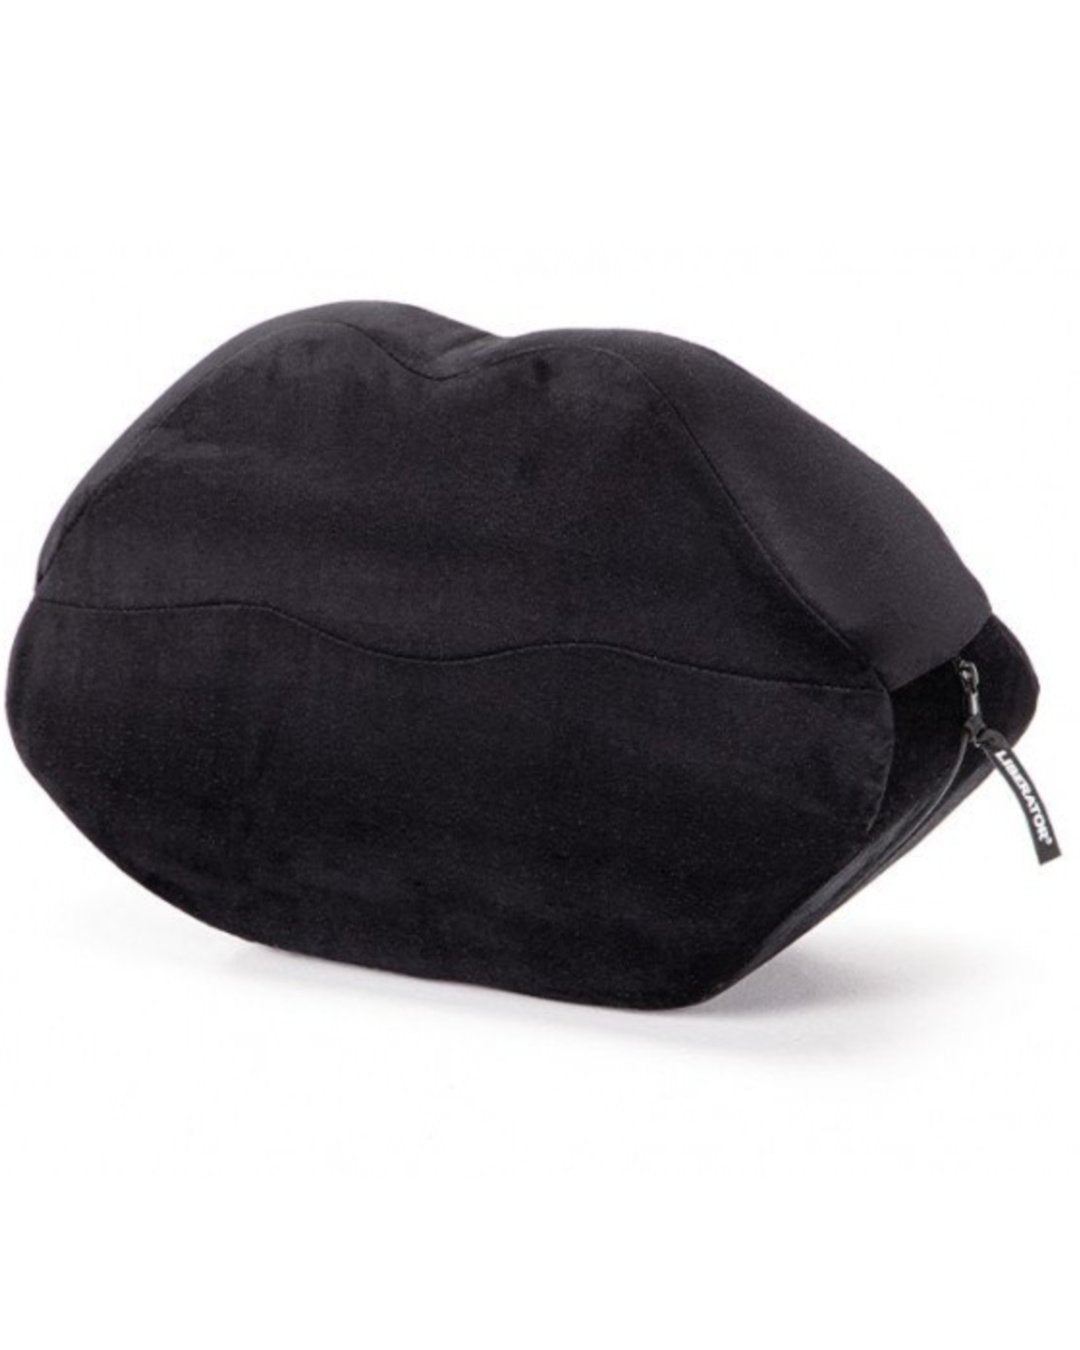 Liberator Kiss Sex Positioning Wedge  Black Pillow